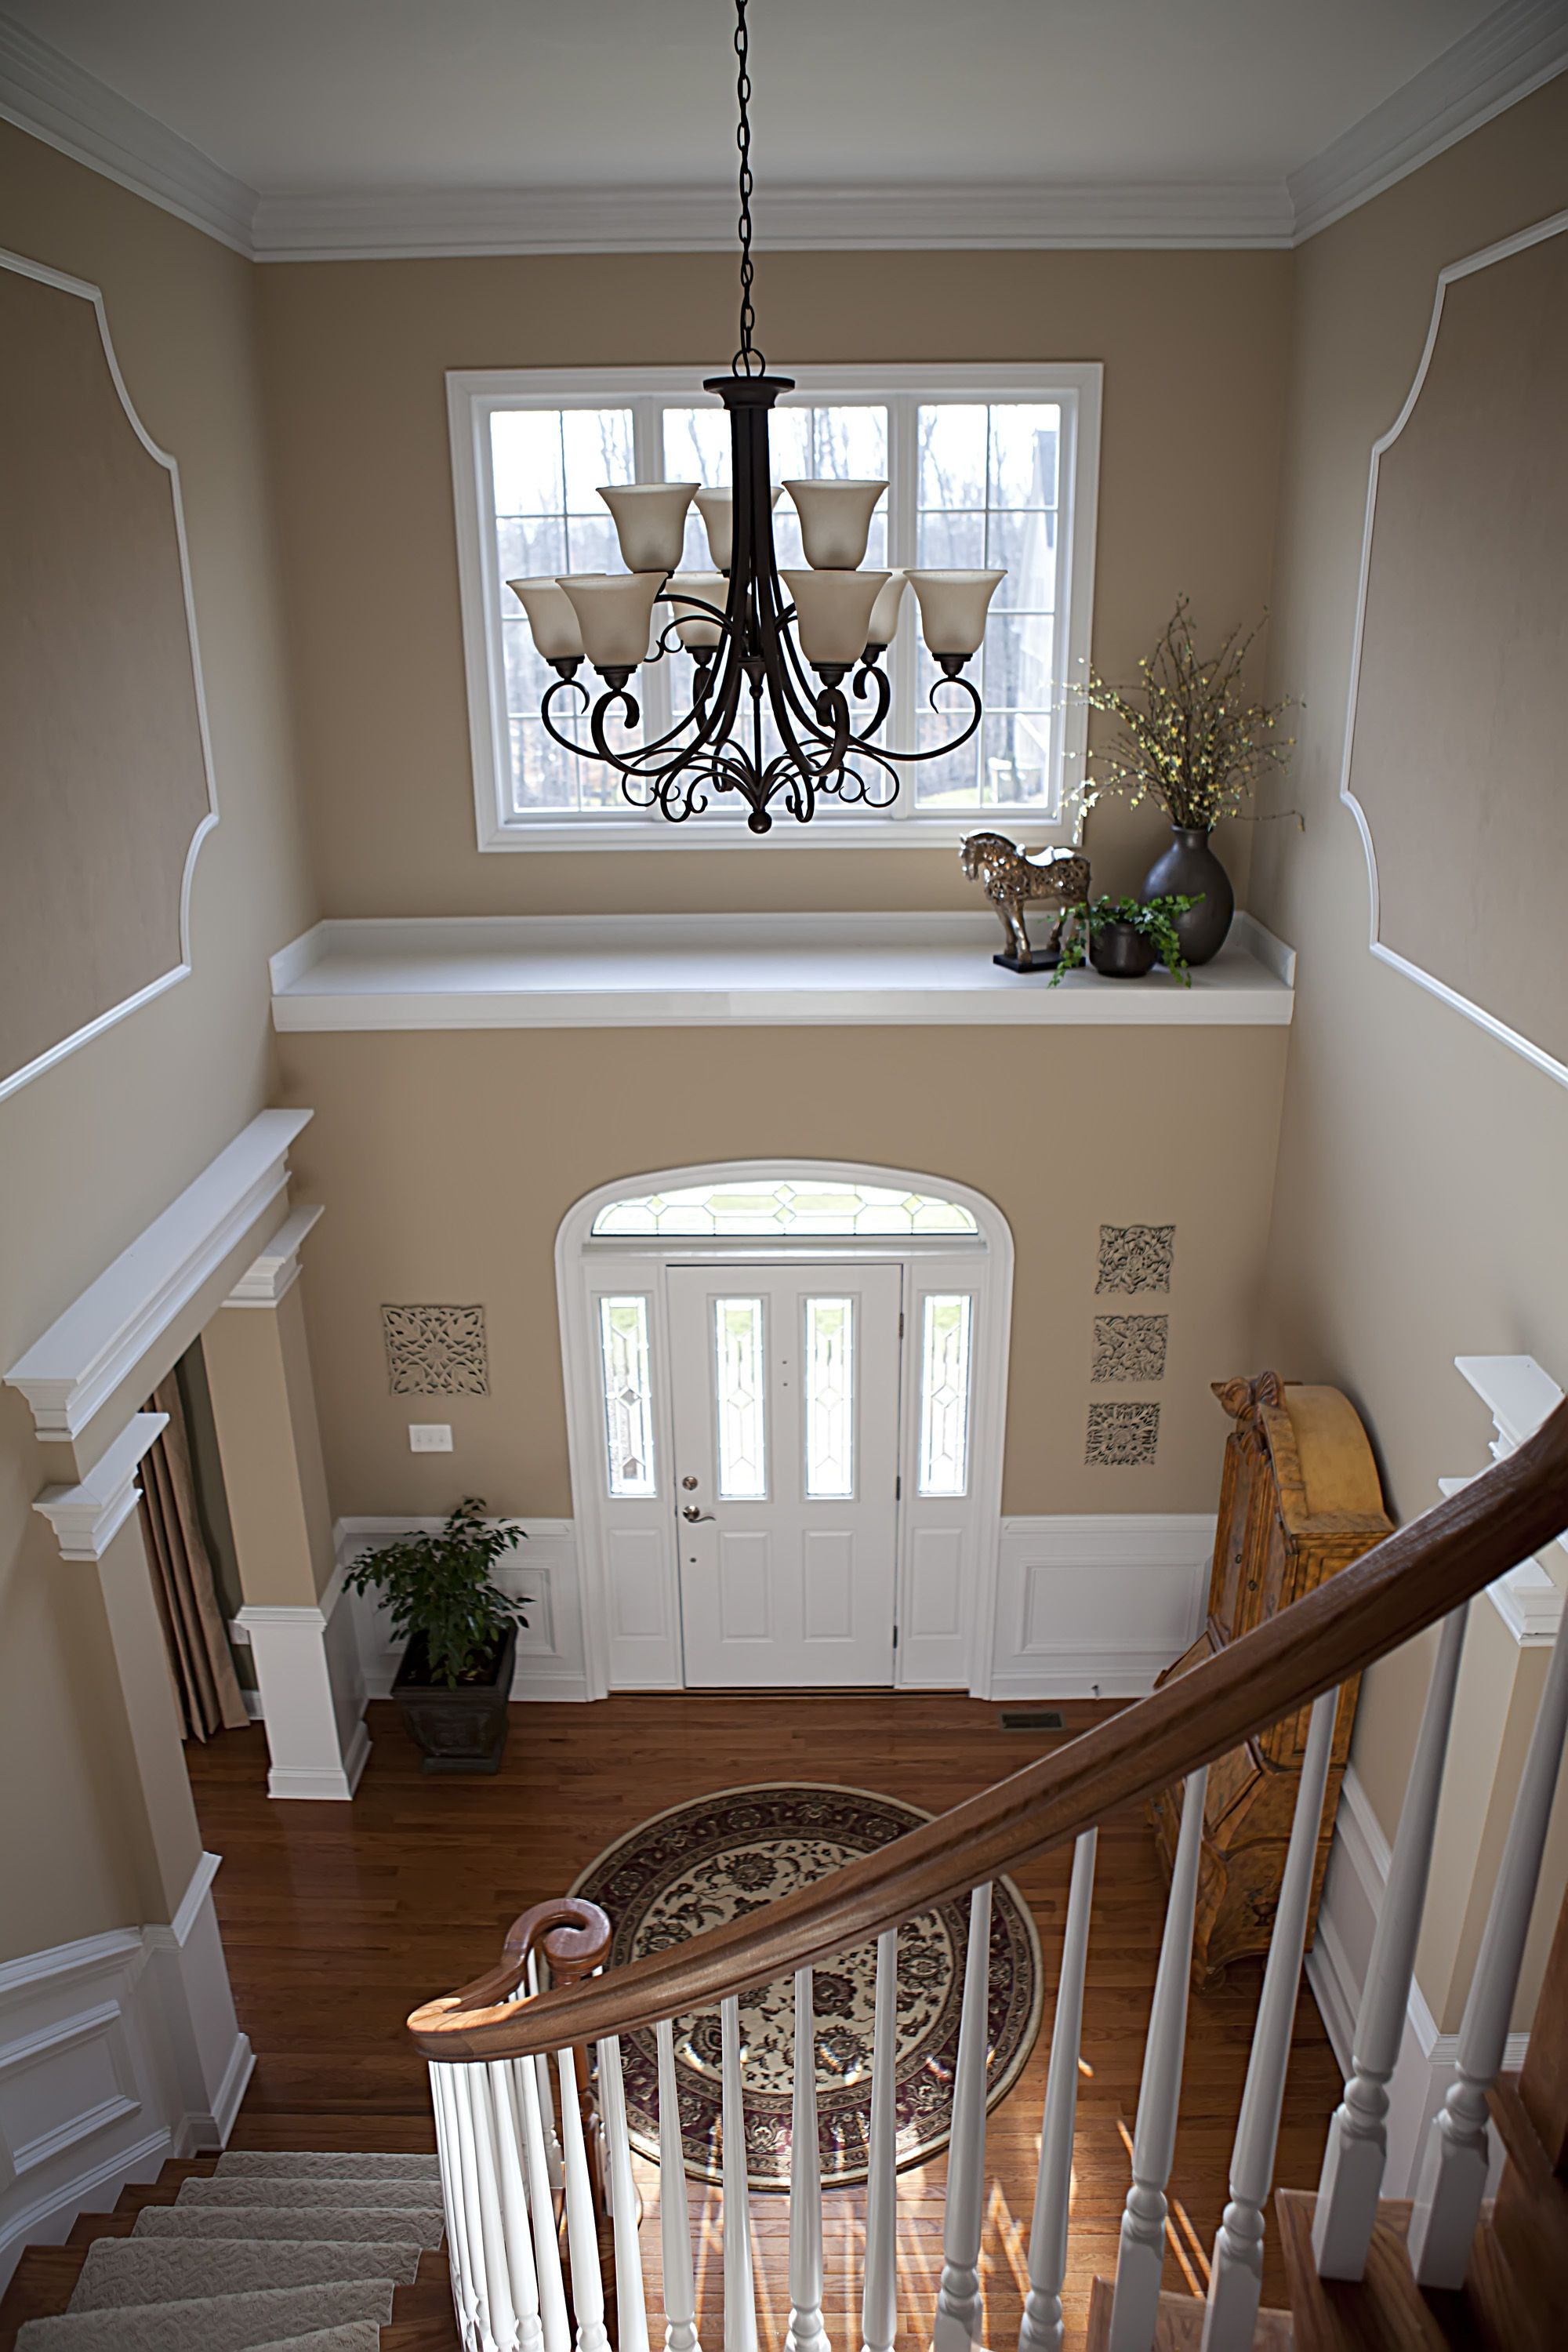 Entrance Foyer Circulation And Balcony In A House : A warm inviting entrance hsm susie s dream house